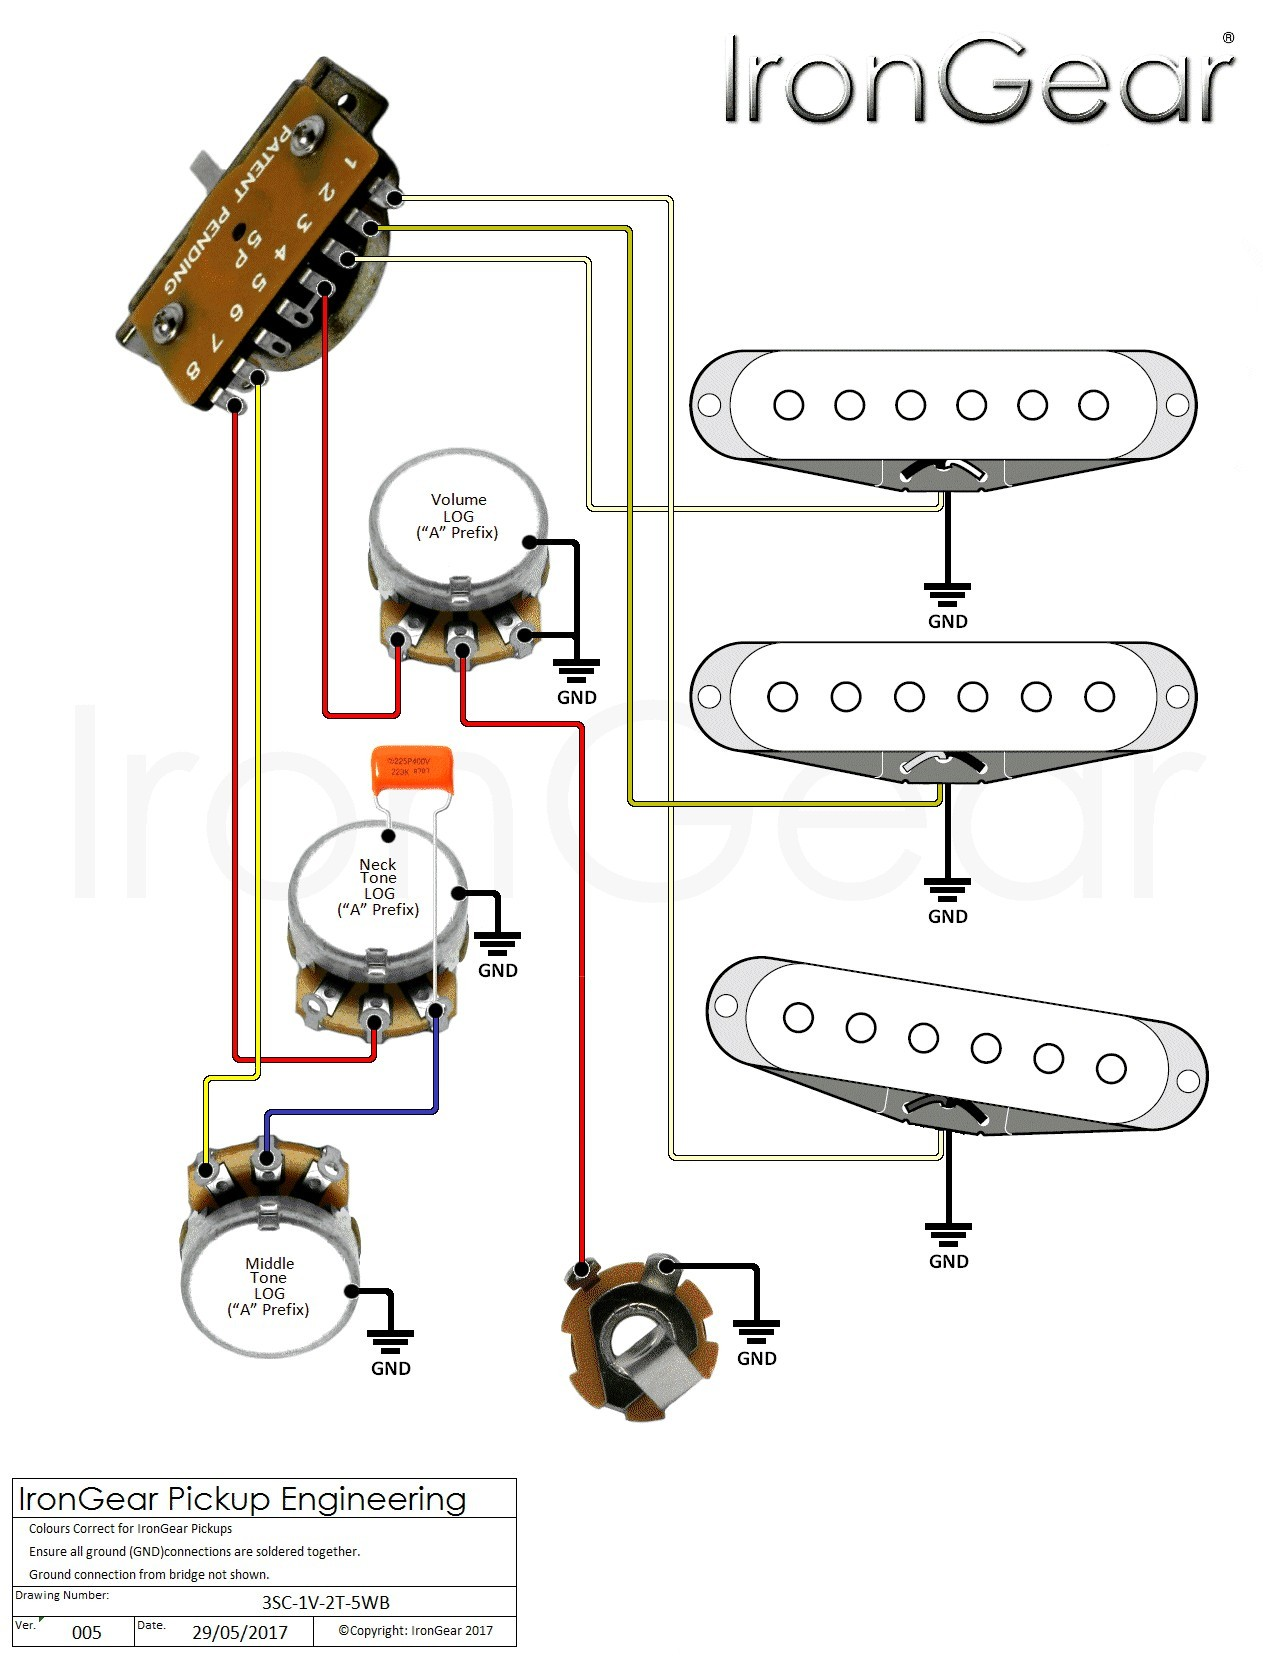 Guitar Wiring Diagrams 2 Pickups Electric Guitar Wiring Diagram E Pickup New Guitar Wiring Diagrams Of Guitar Wiring Diagrams 2 Pickups